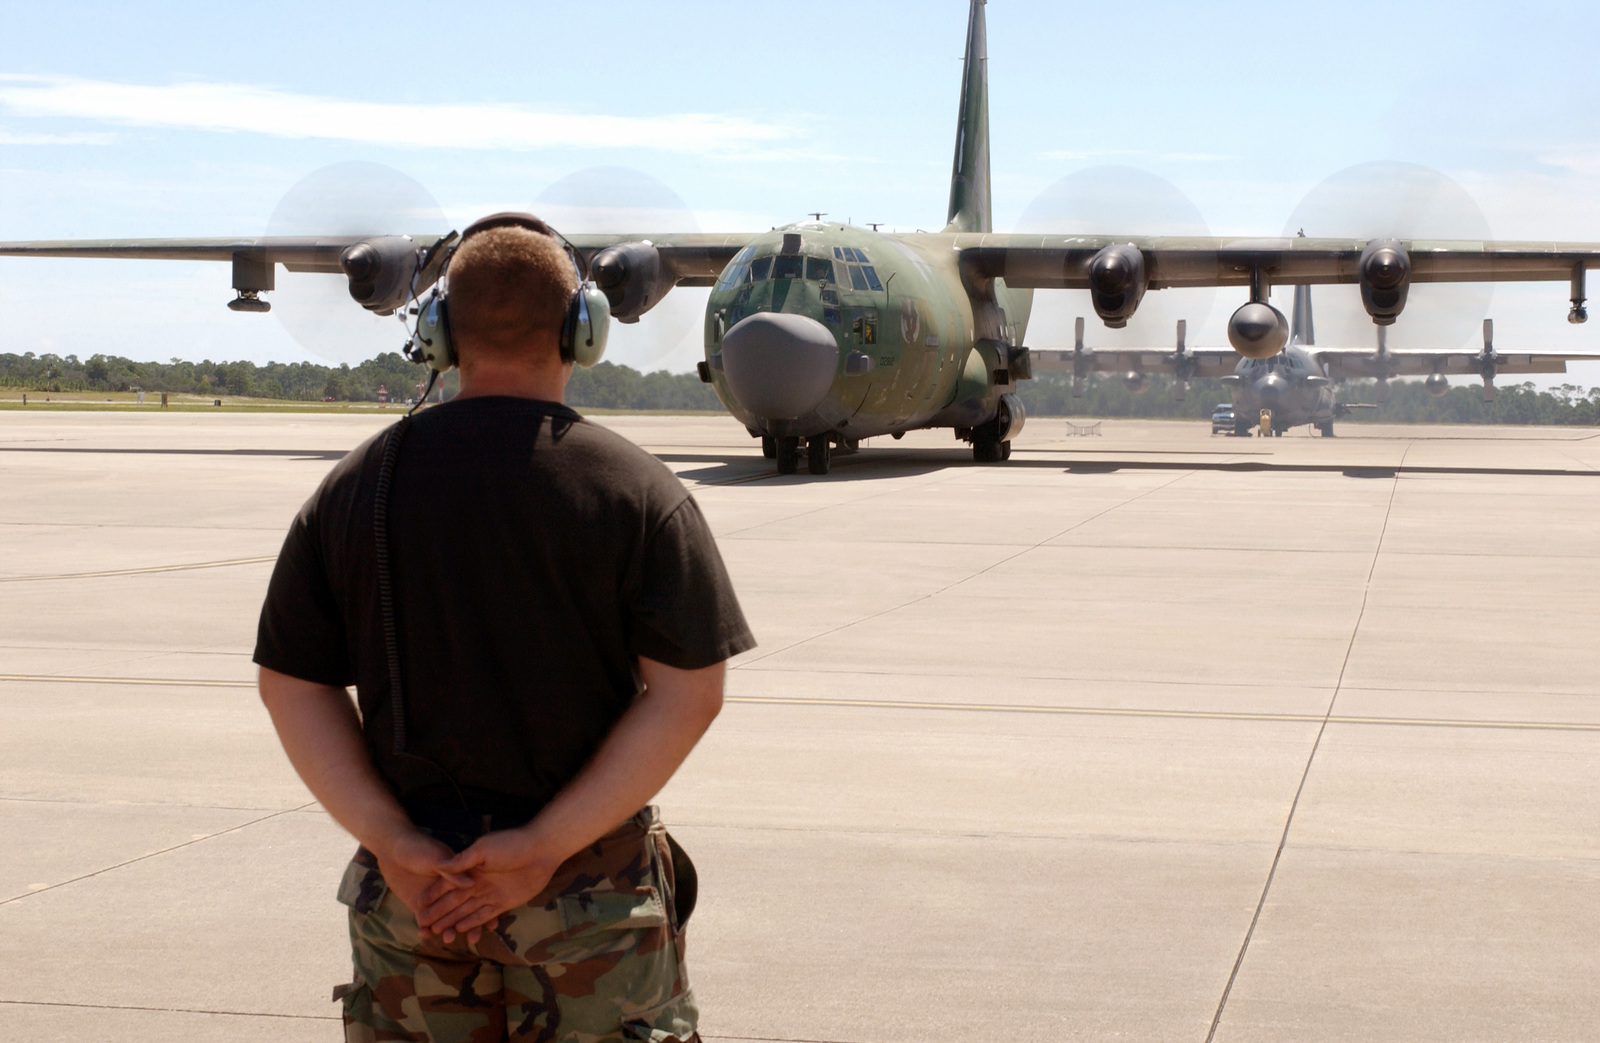 U.S. Air Force STAFF SGT. Adam Smith assigned to the 16th Special Operations Wing, marshals a MC-130H Talon aircraft onto the tarmac as it prepares to leave Hurlburt Field, Fla, as part of the Advanced Contingency Team leaving for Fort Campbell, Kentucky on Sept. 12, 2004, in preparation for Hurricane Ivan. (US Air Force PHOTO by AIRMAN 1ST Class Kimberly Gilligan) (Released)